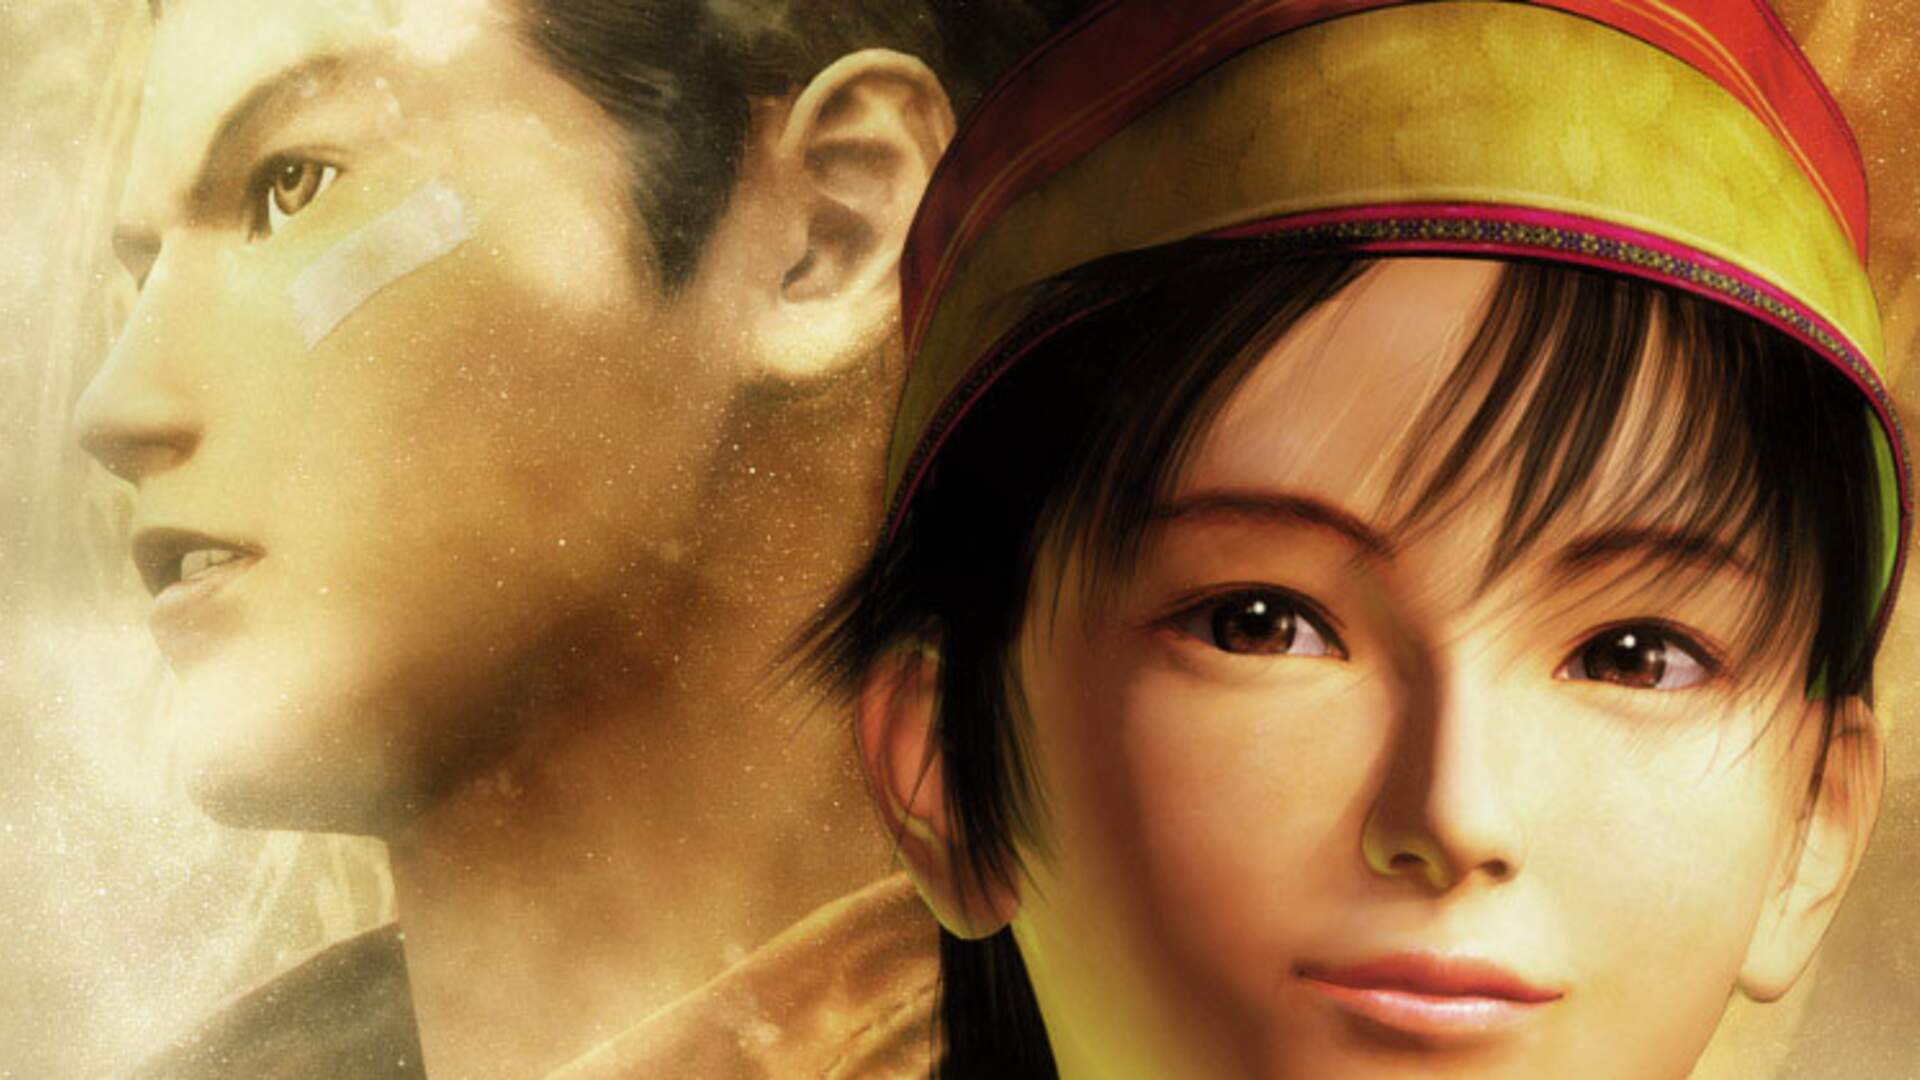 I Never Want to Play Shenmue 3, Half-Life 3 or The Last Guardian